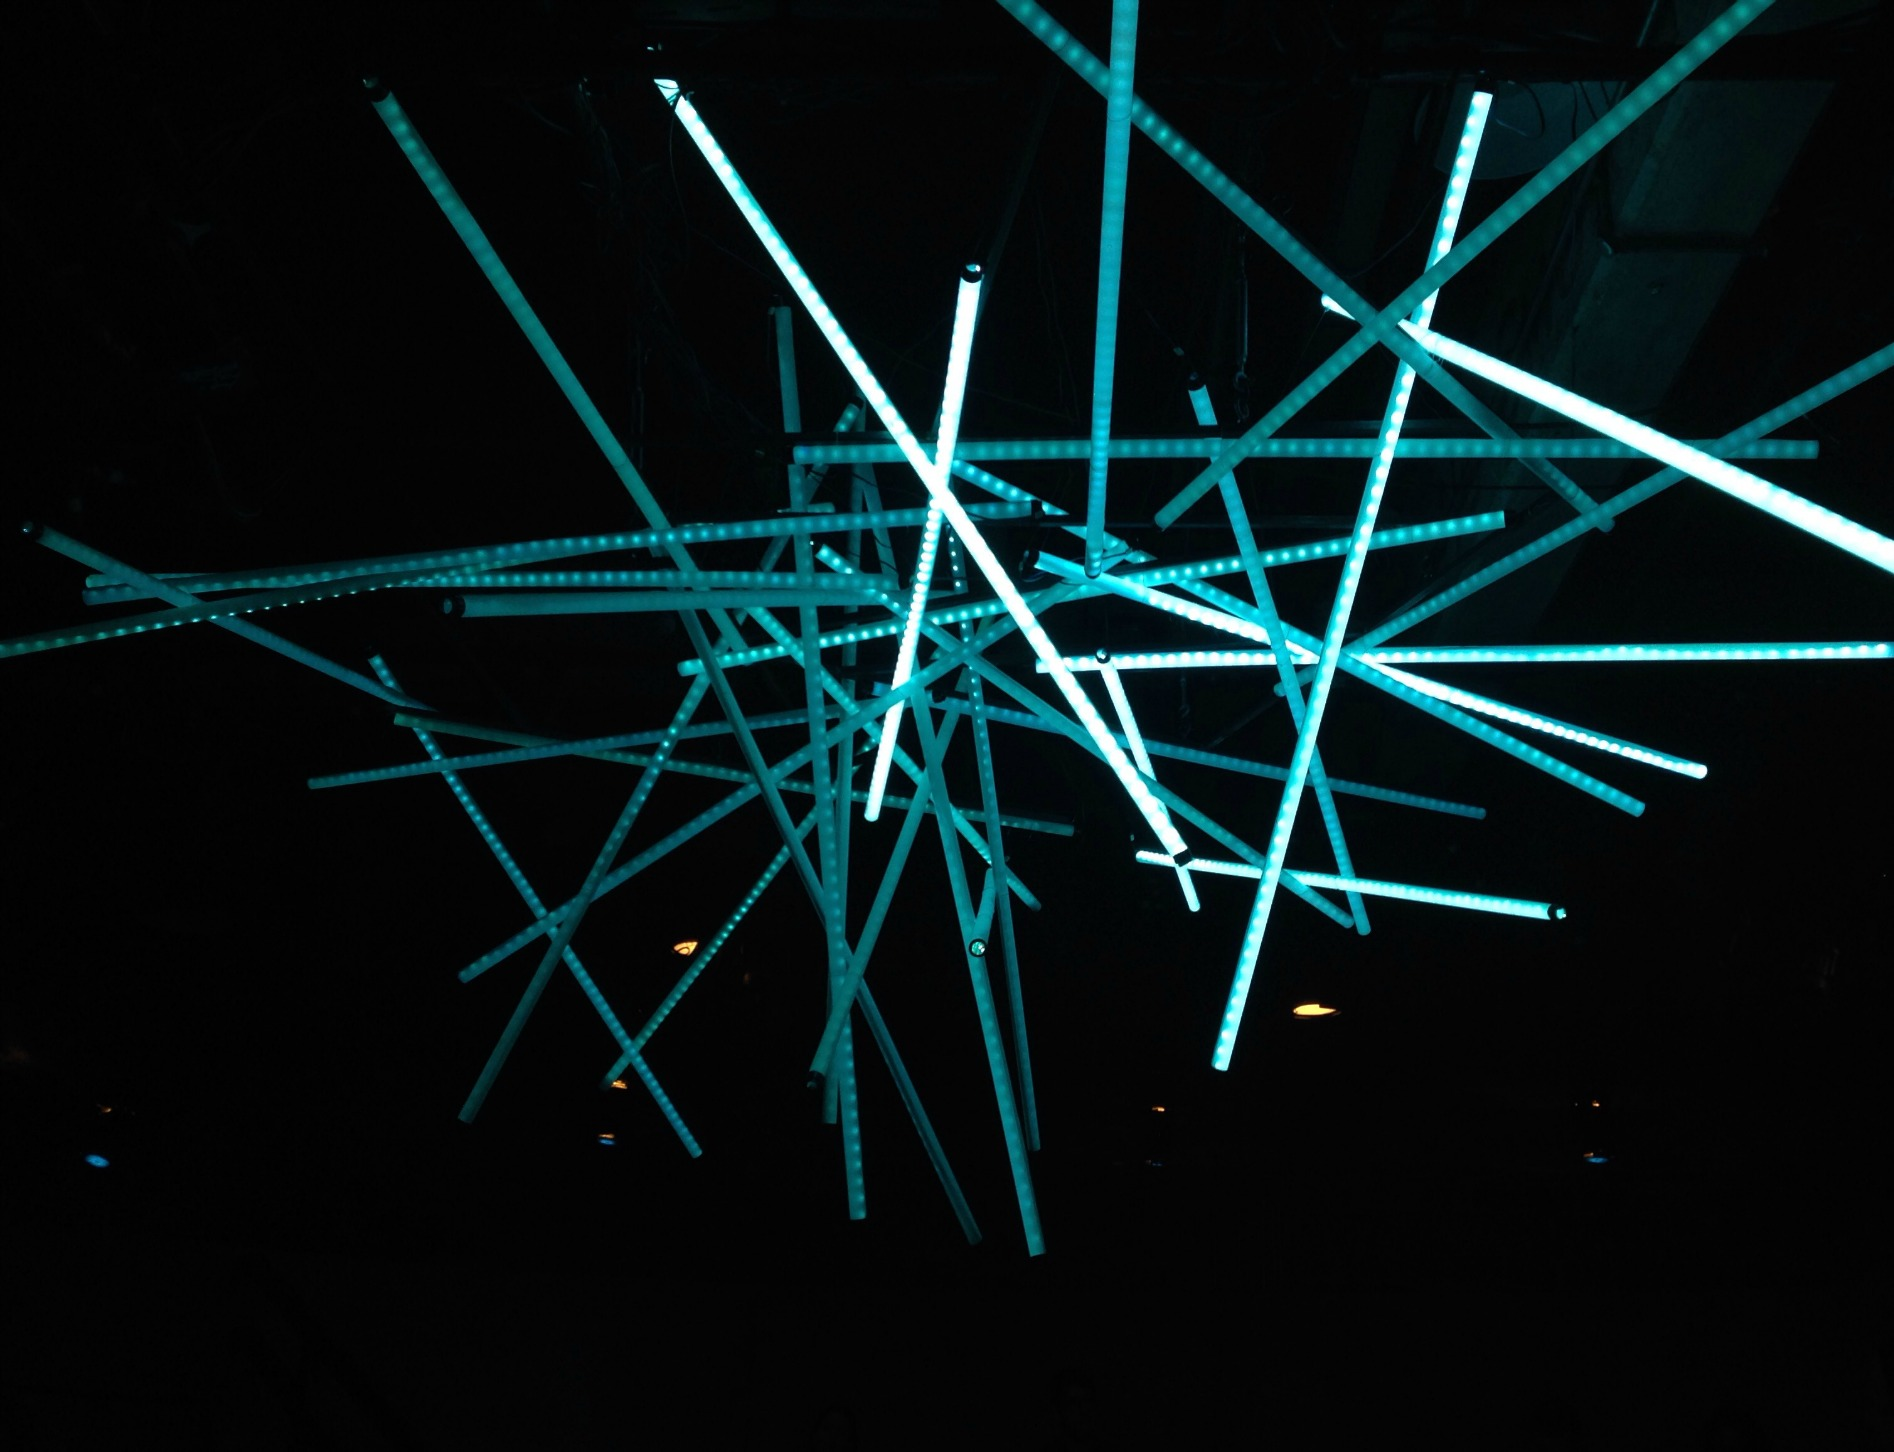 Light installation from Constellations, Studio Theater, DC